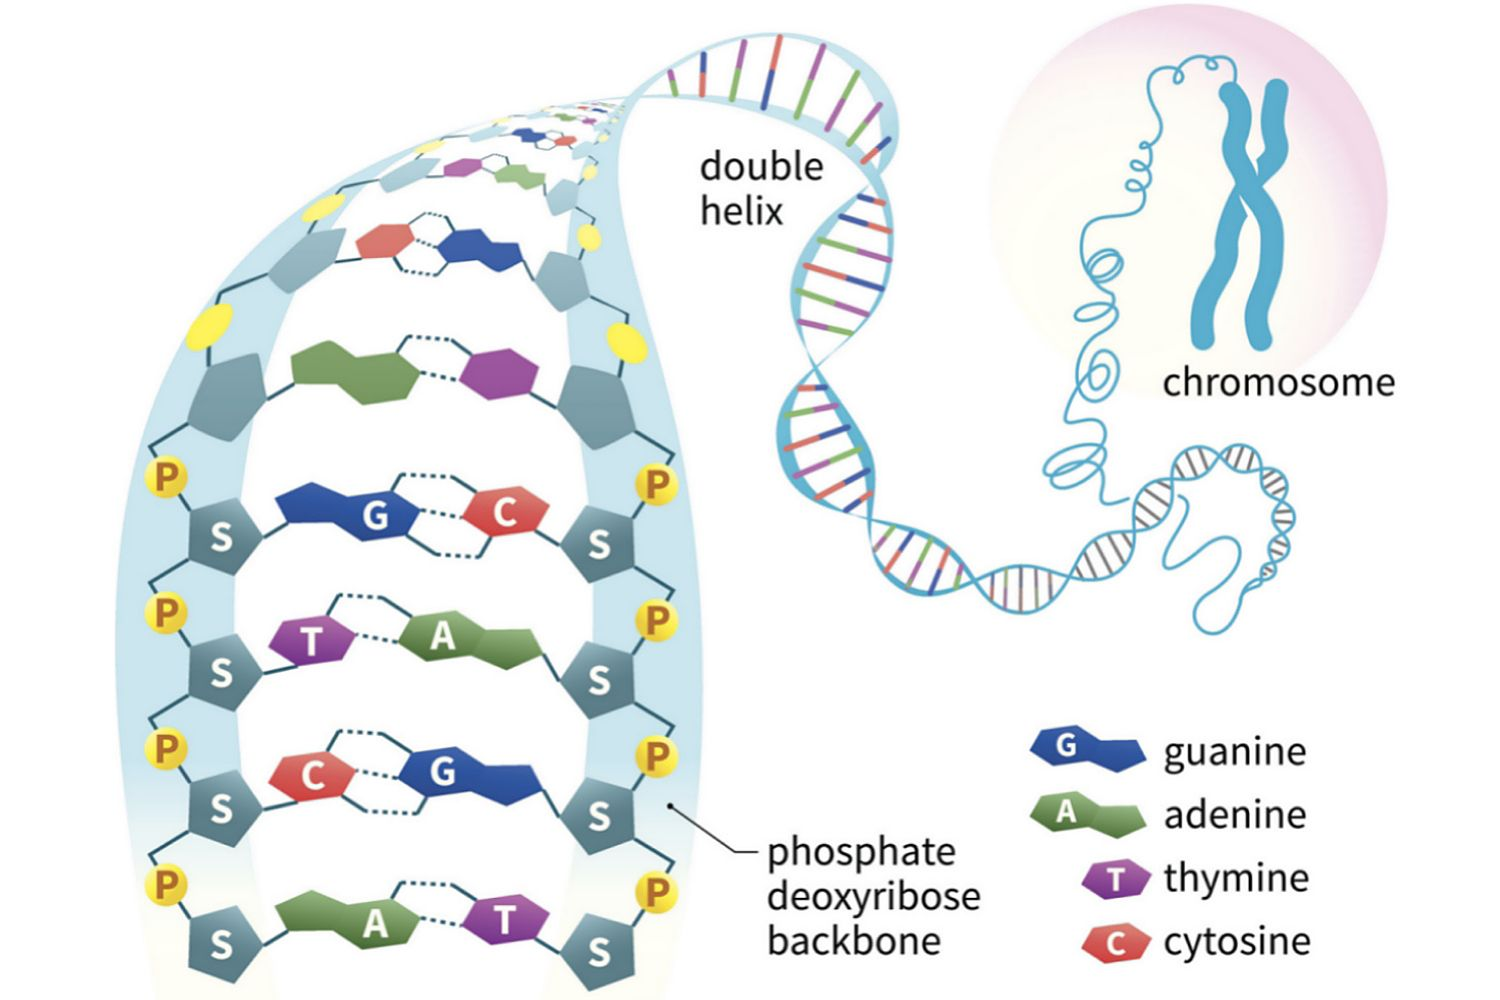 nucleic acids - function, examples, and monomers